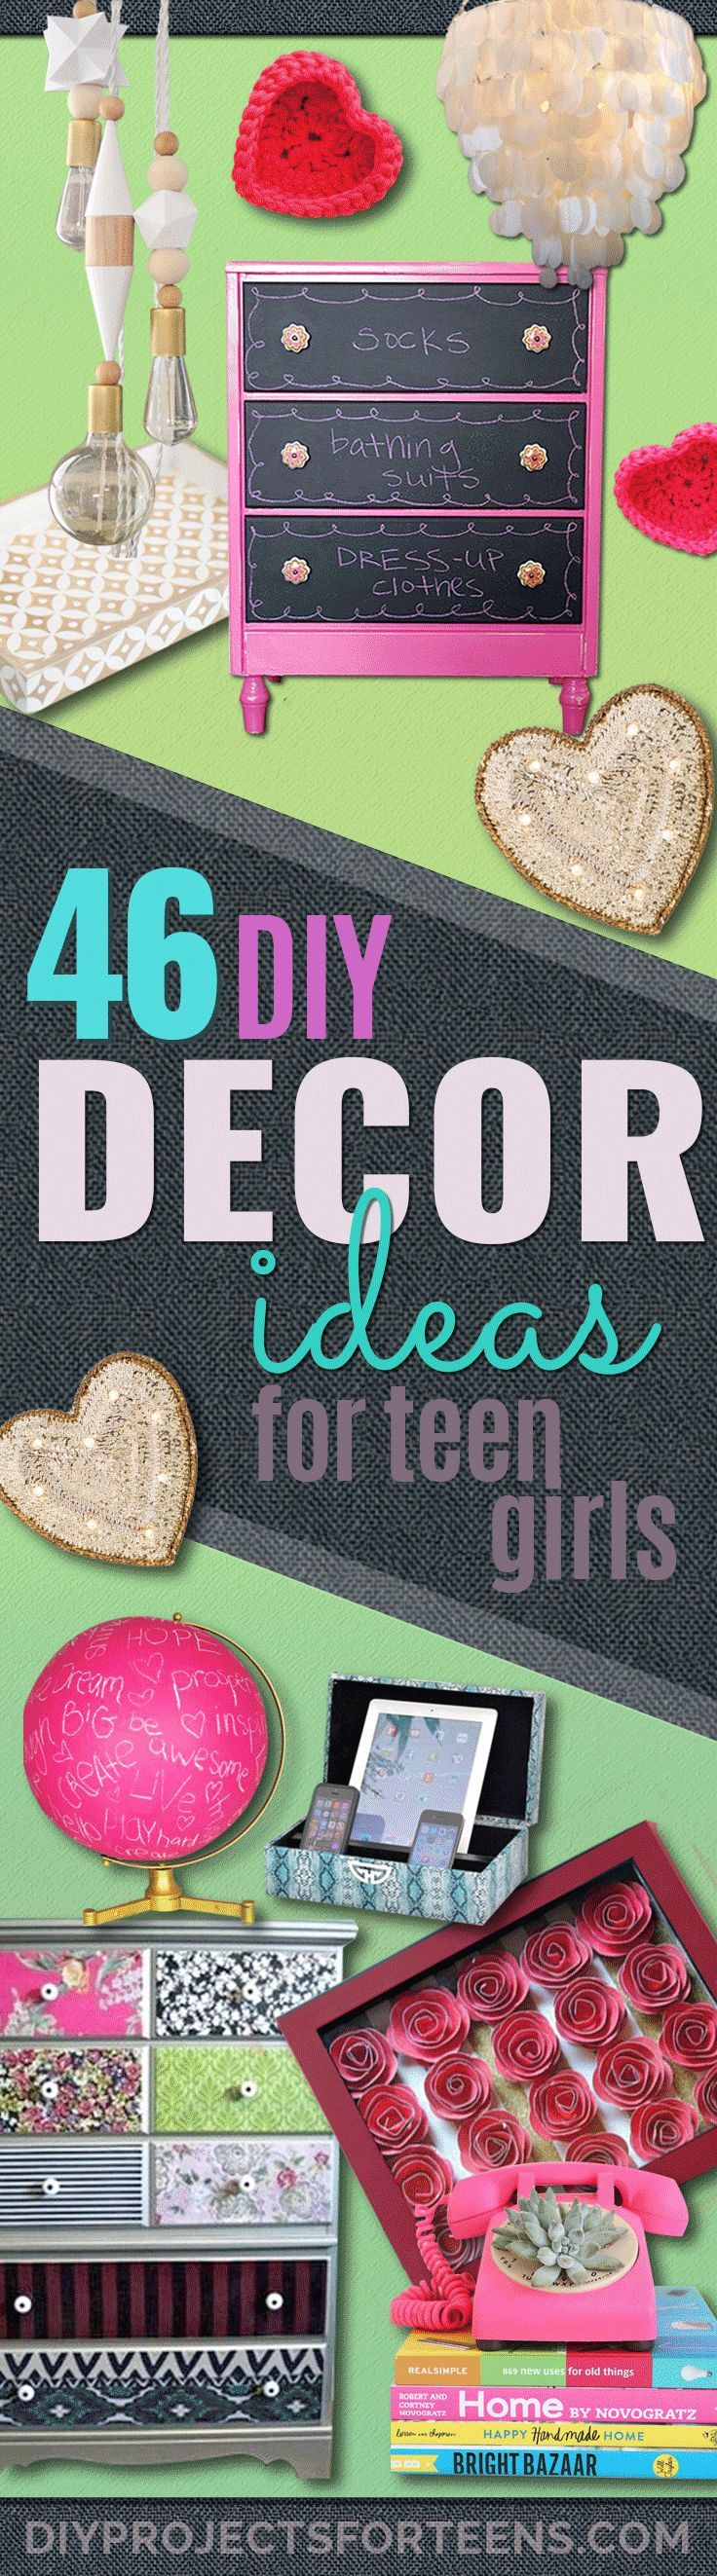 55 best diy decorating images on pinterest | diy, bedroom ideas